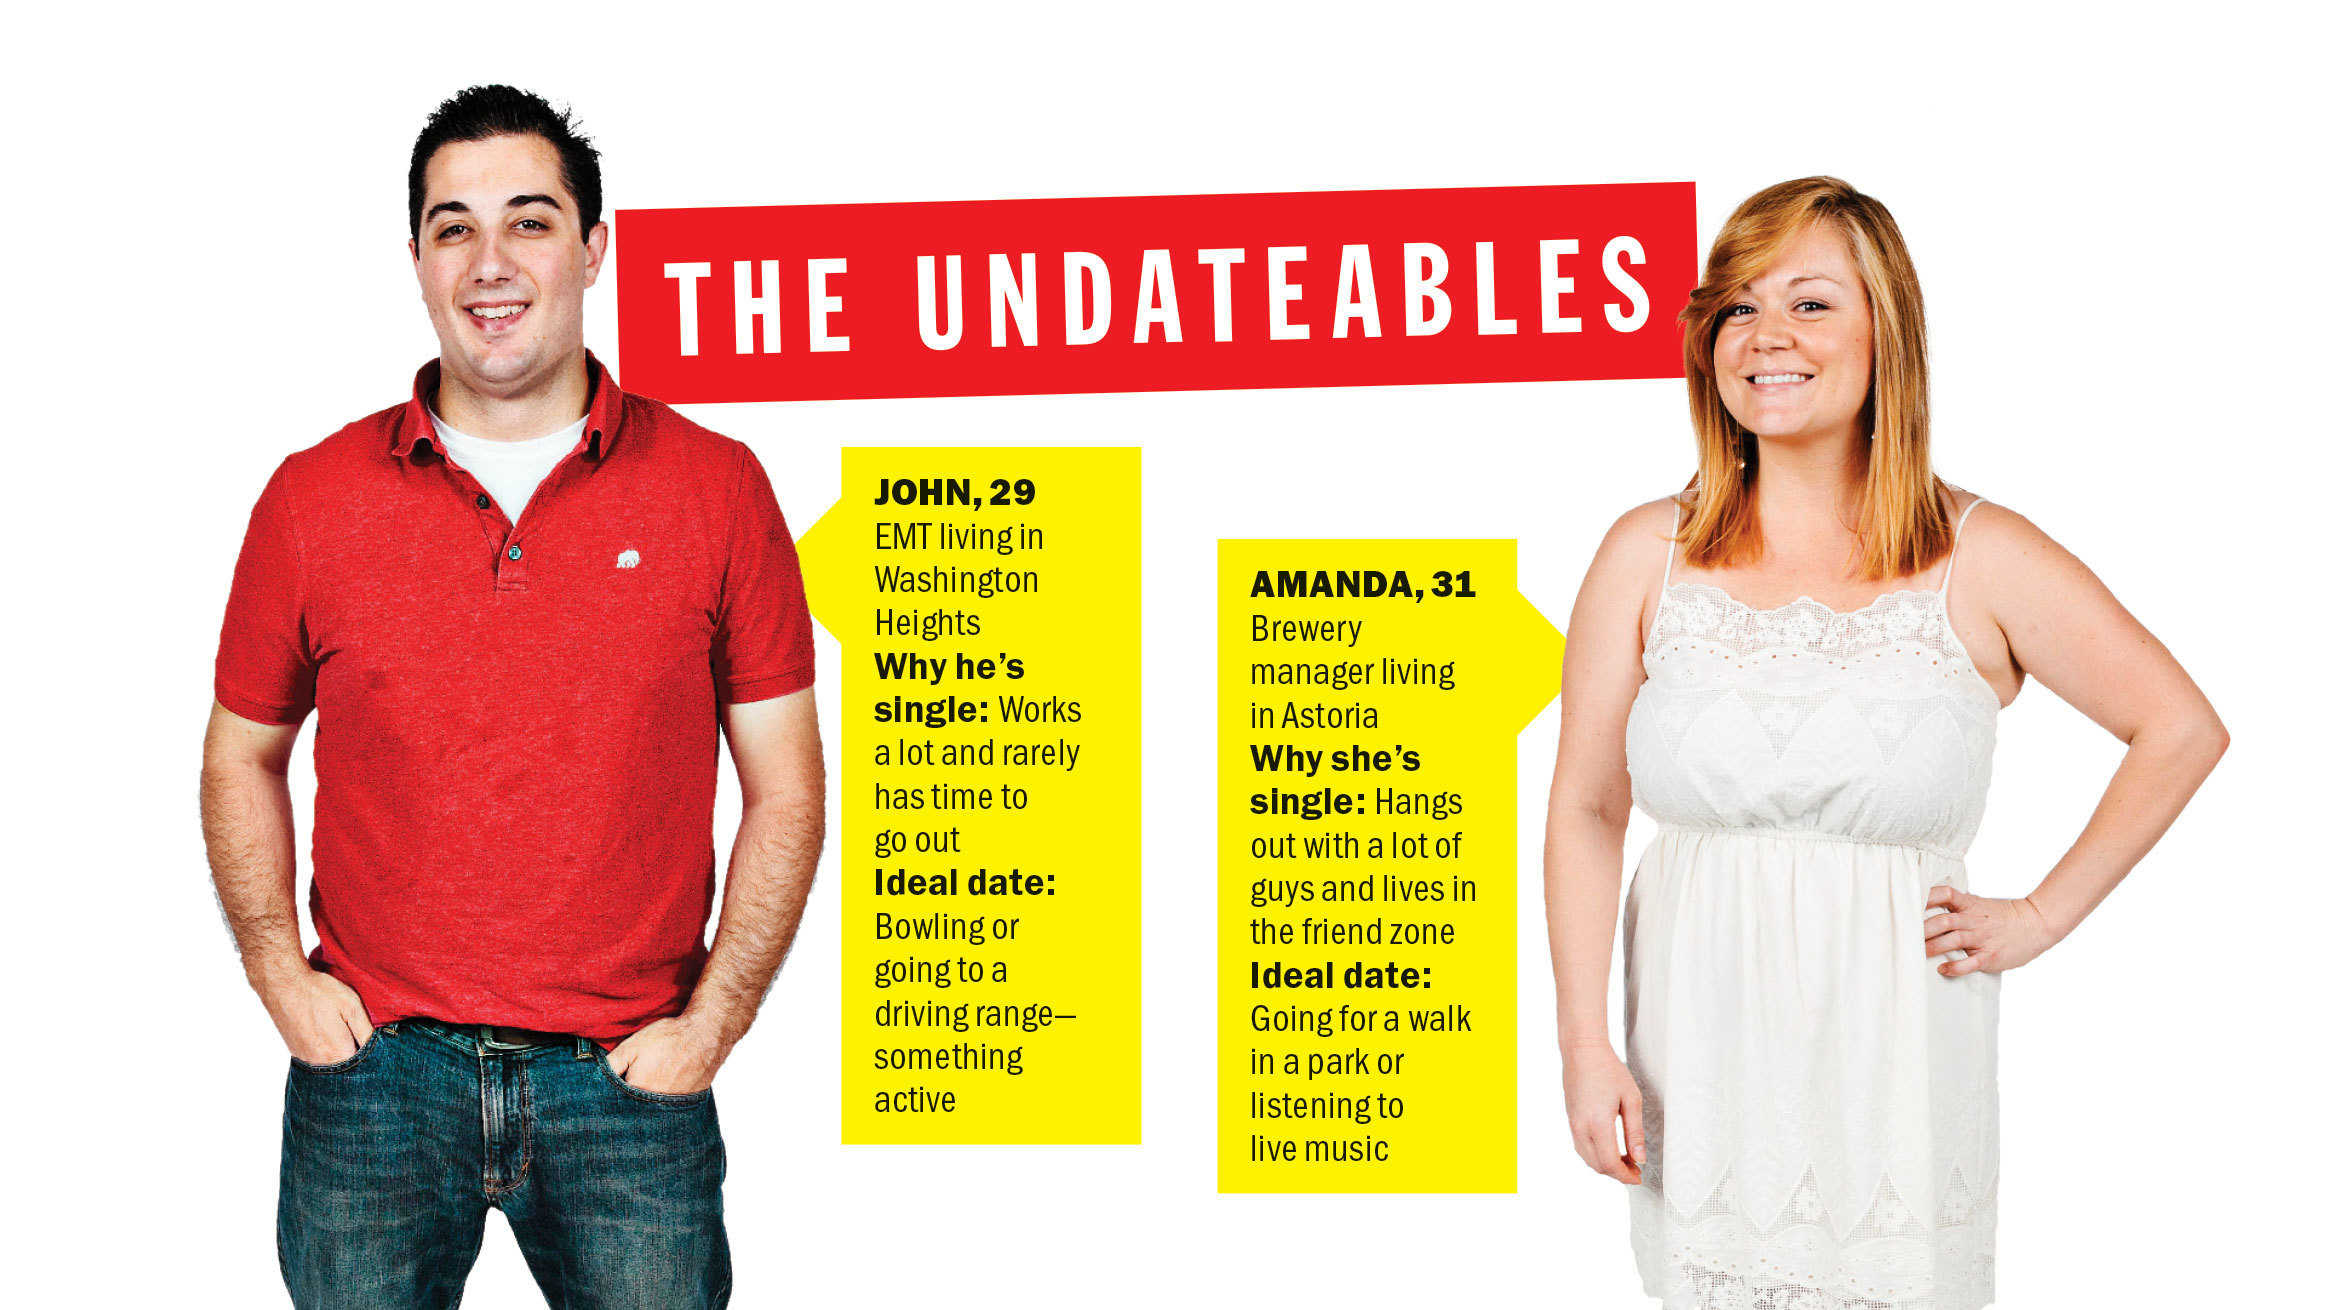 After the Undateables: A terrible second date